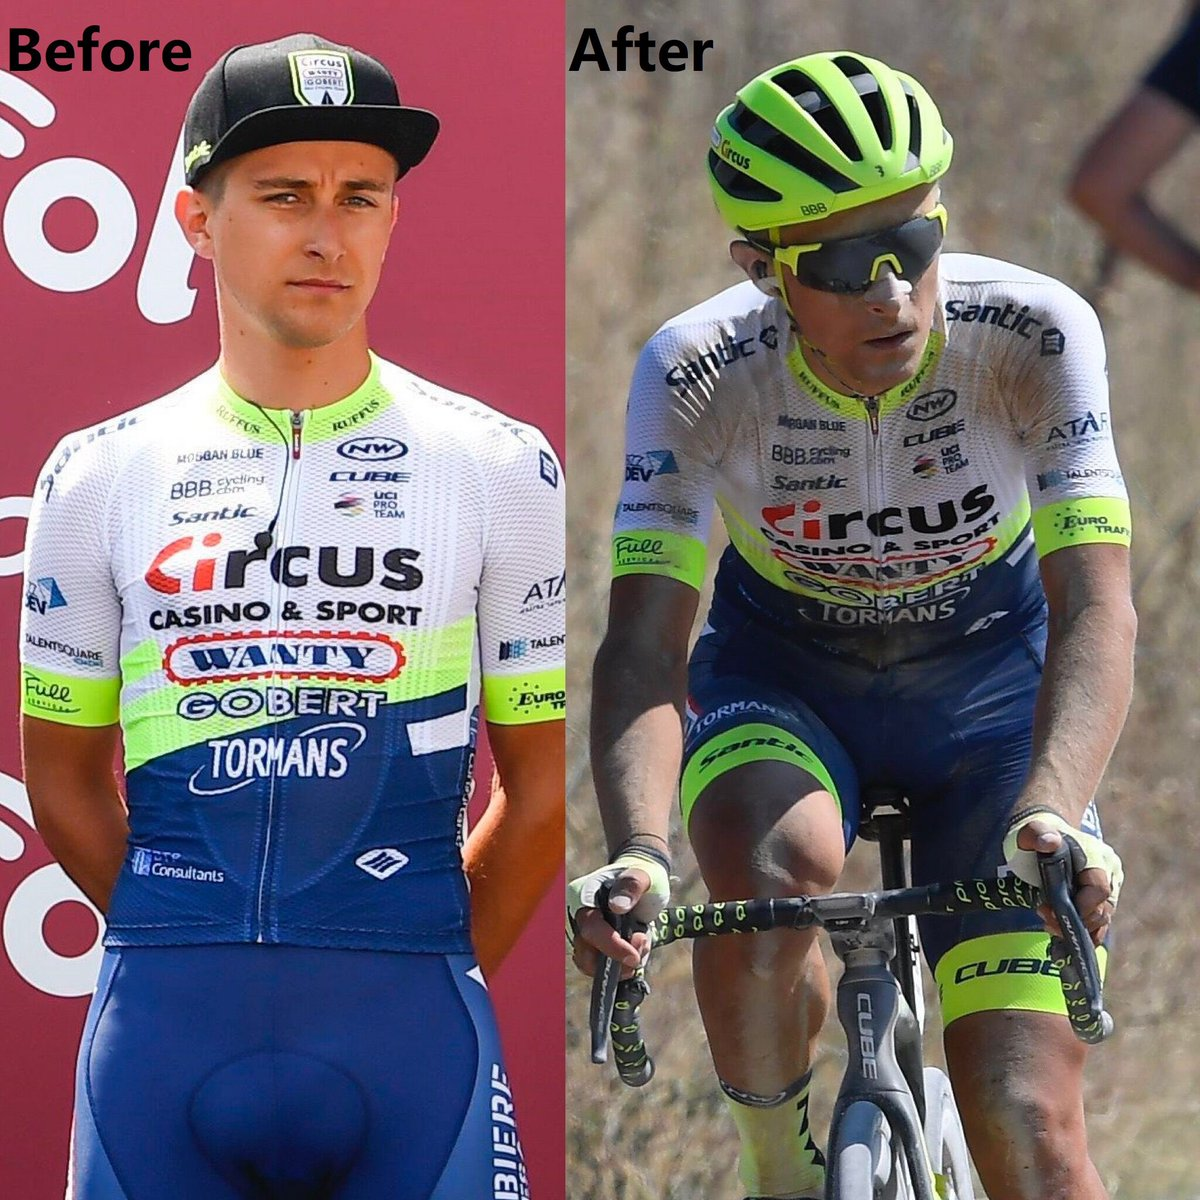 Before VS After #stradebianche 2020. If I didn't join in the race, I am still a good, decent, clean man https://t.co/jKwfE1tnKB